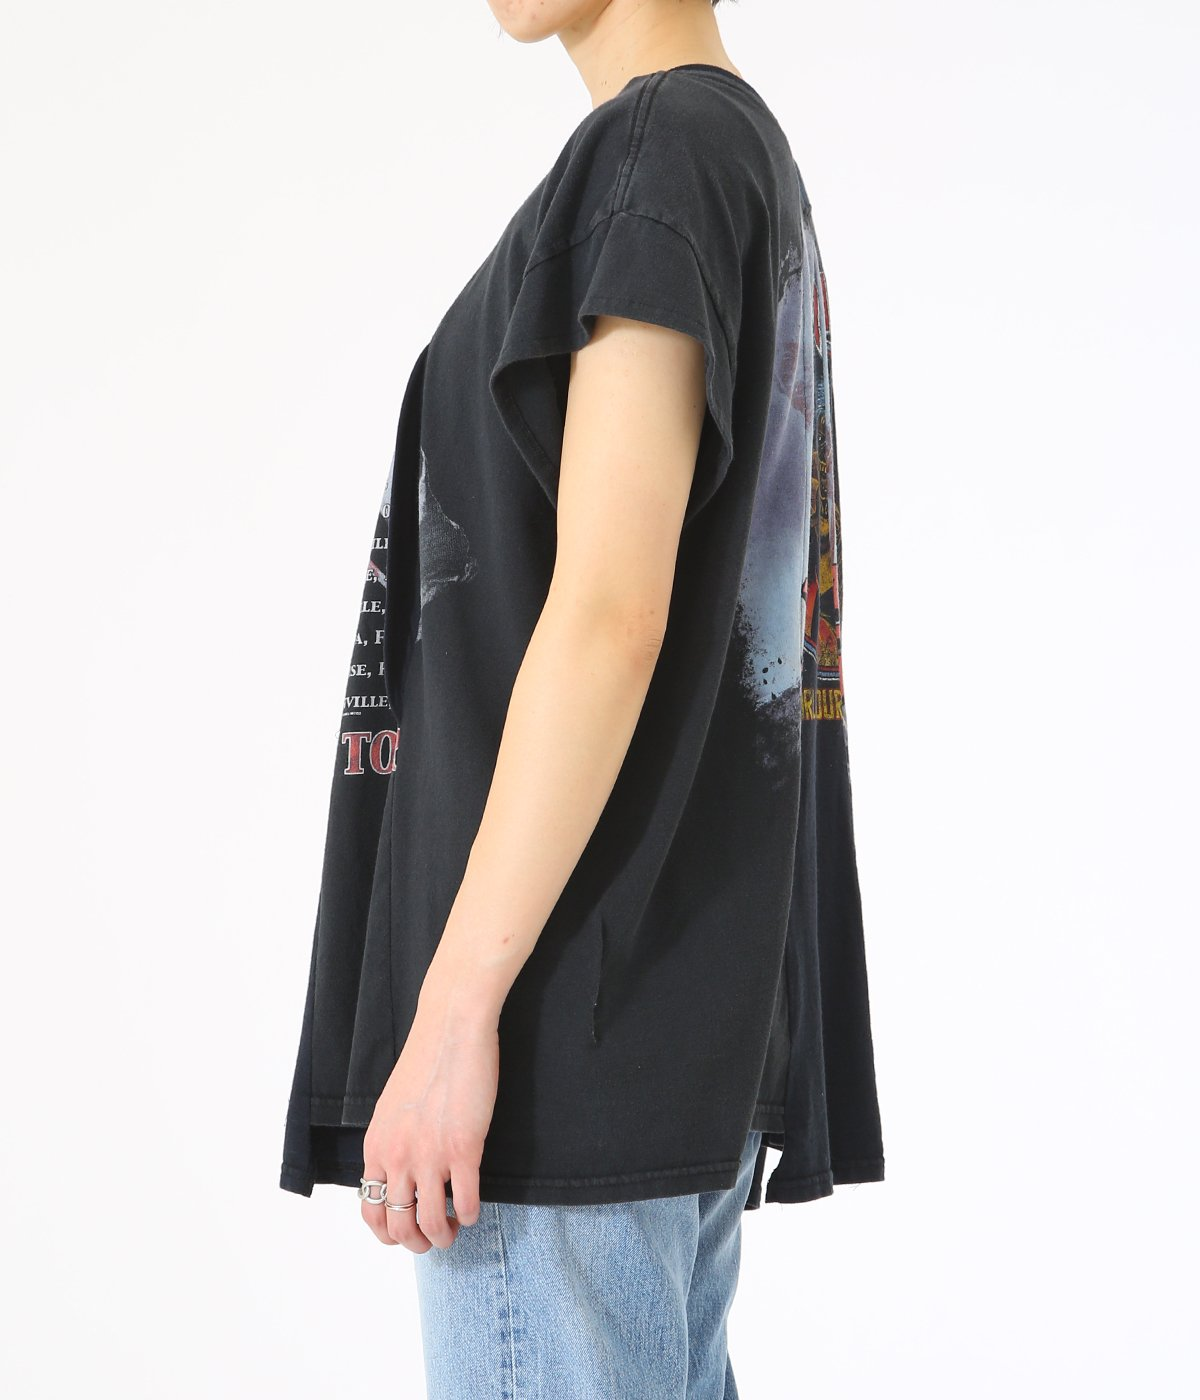 【レディース】circa make wide hem 3D oval top